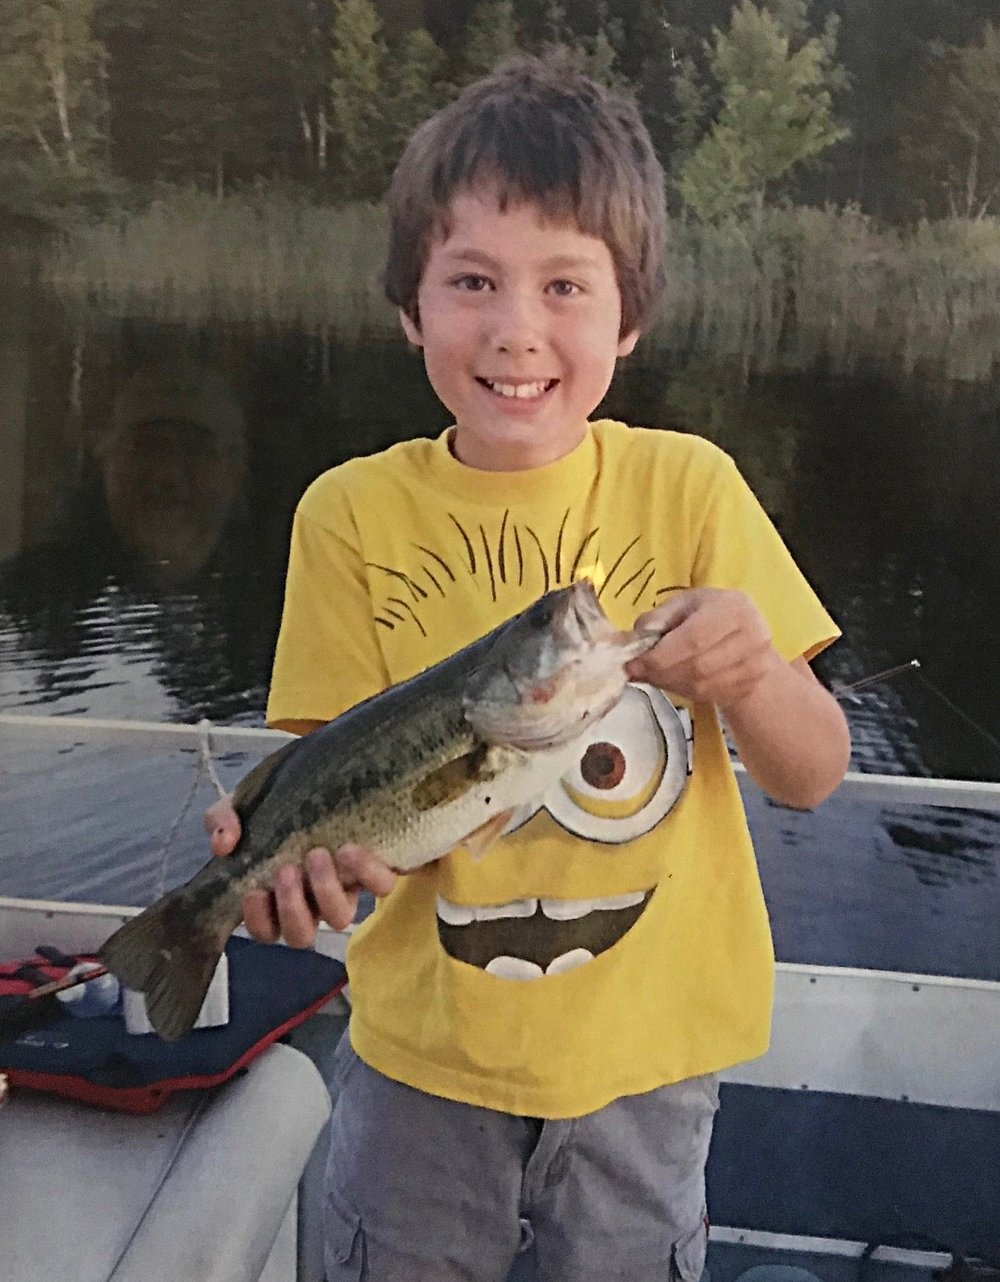 - Fishing Fun for Everyone!Park Lake in Carlton County covers 381 acres with 3.4 miles of shoreline. At a maximum depth of 16 feet, Park Lake produces Crappie, Bluegill, Hybrid Sunfish, Large-mouth Bass, Northern Pike, Rock Bass, Walleye, Perch. Get your next big catch!